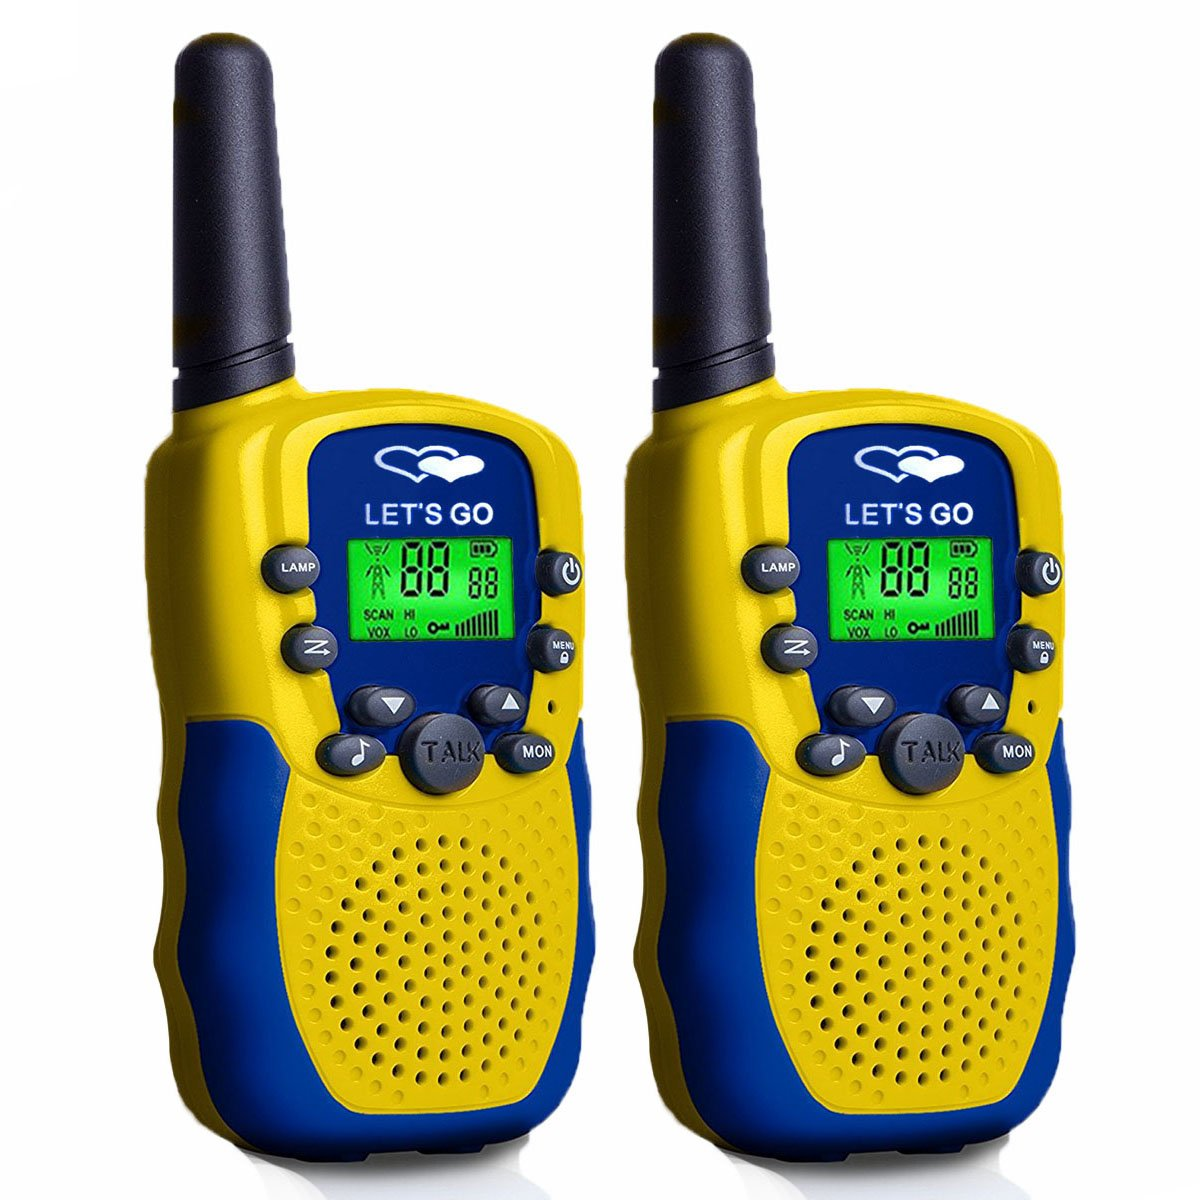 Toys for 3-12 Year Old Boys, Darli Walkie Talkies for Kids Long Range Toys for 3-12 Year Old Girls Gifts-Best Gifts for kids